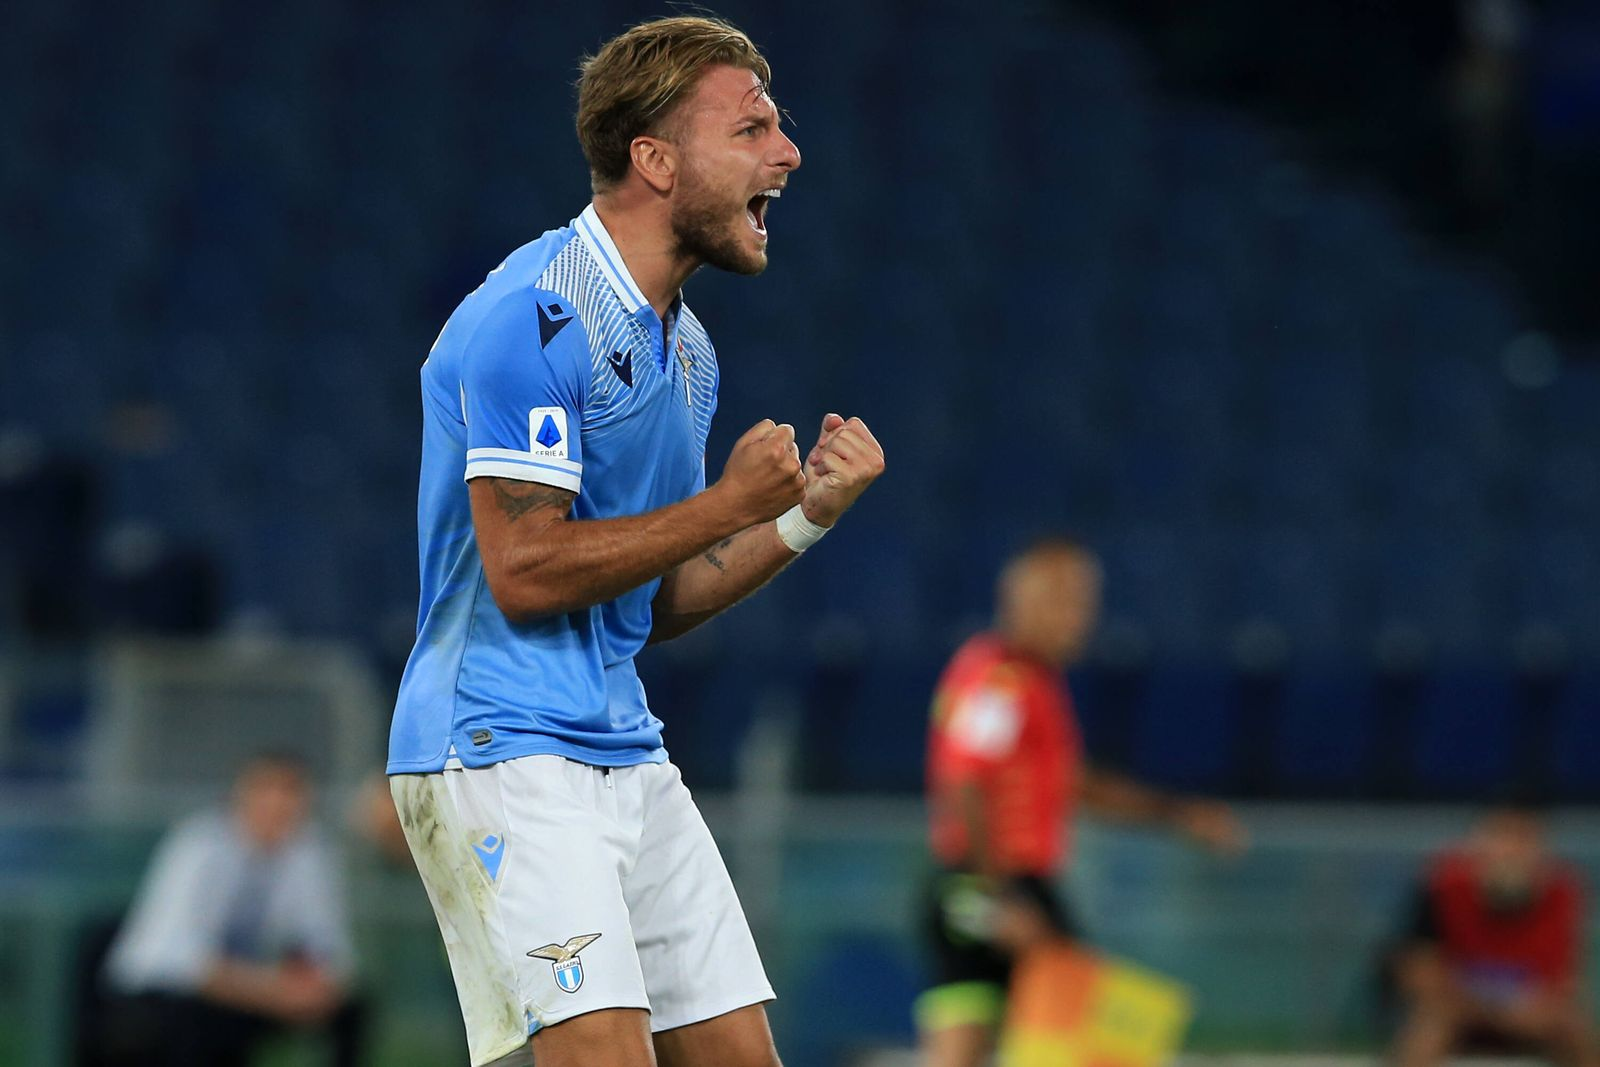 Italy: Serie A : SS Lazio beat Brescia Calcio Ciro Immobile (Lazio) celebrates after scoring a goal during the Serie A